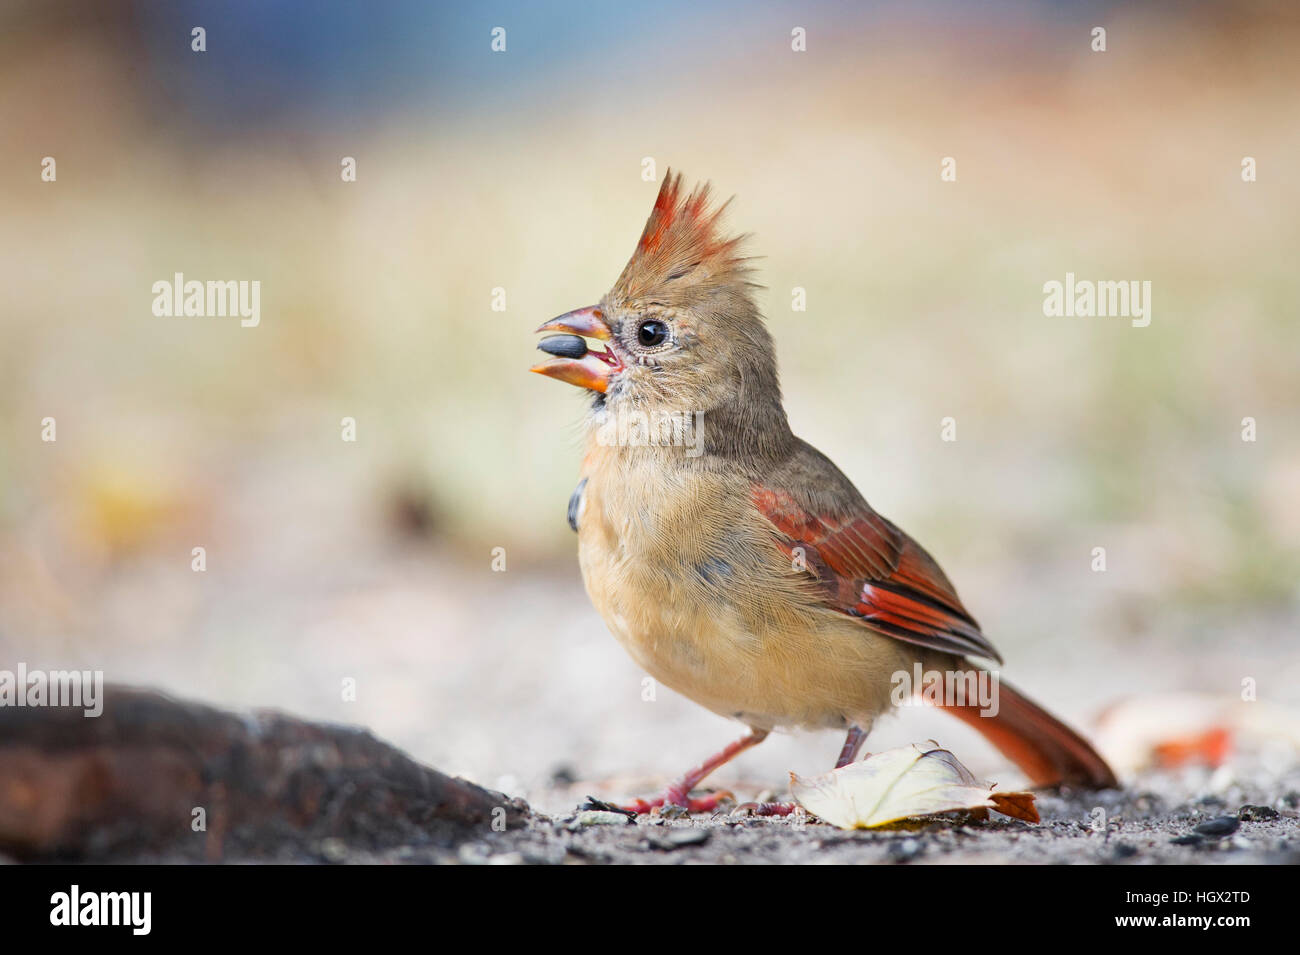 A female Northern Cardinal holds a seed in its beak as it eats on the ground - Stock Image